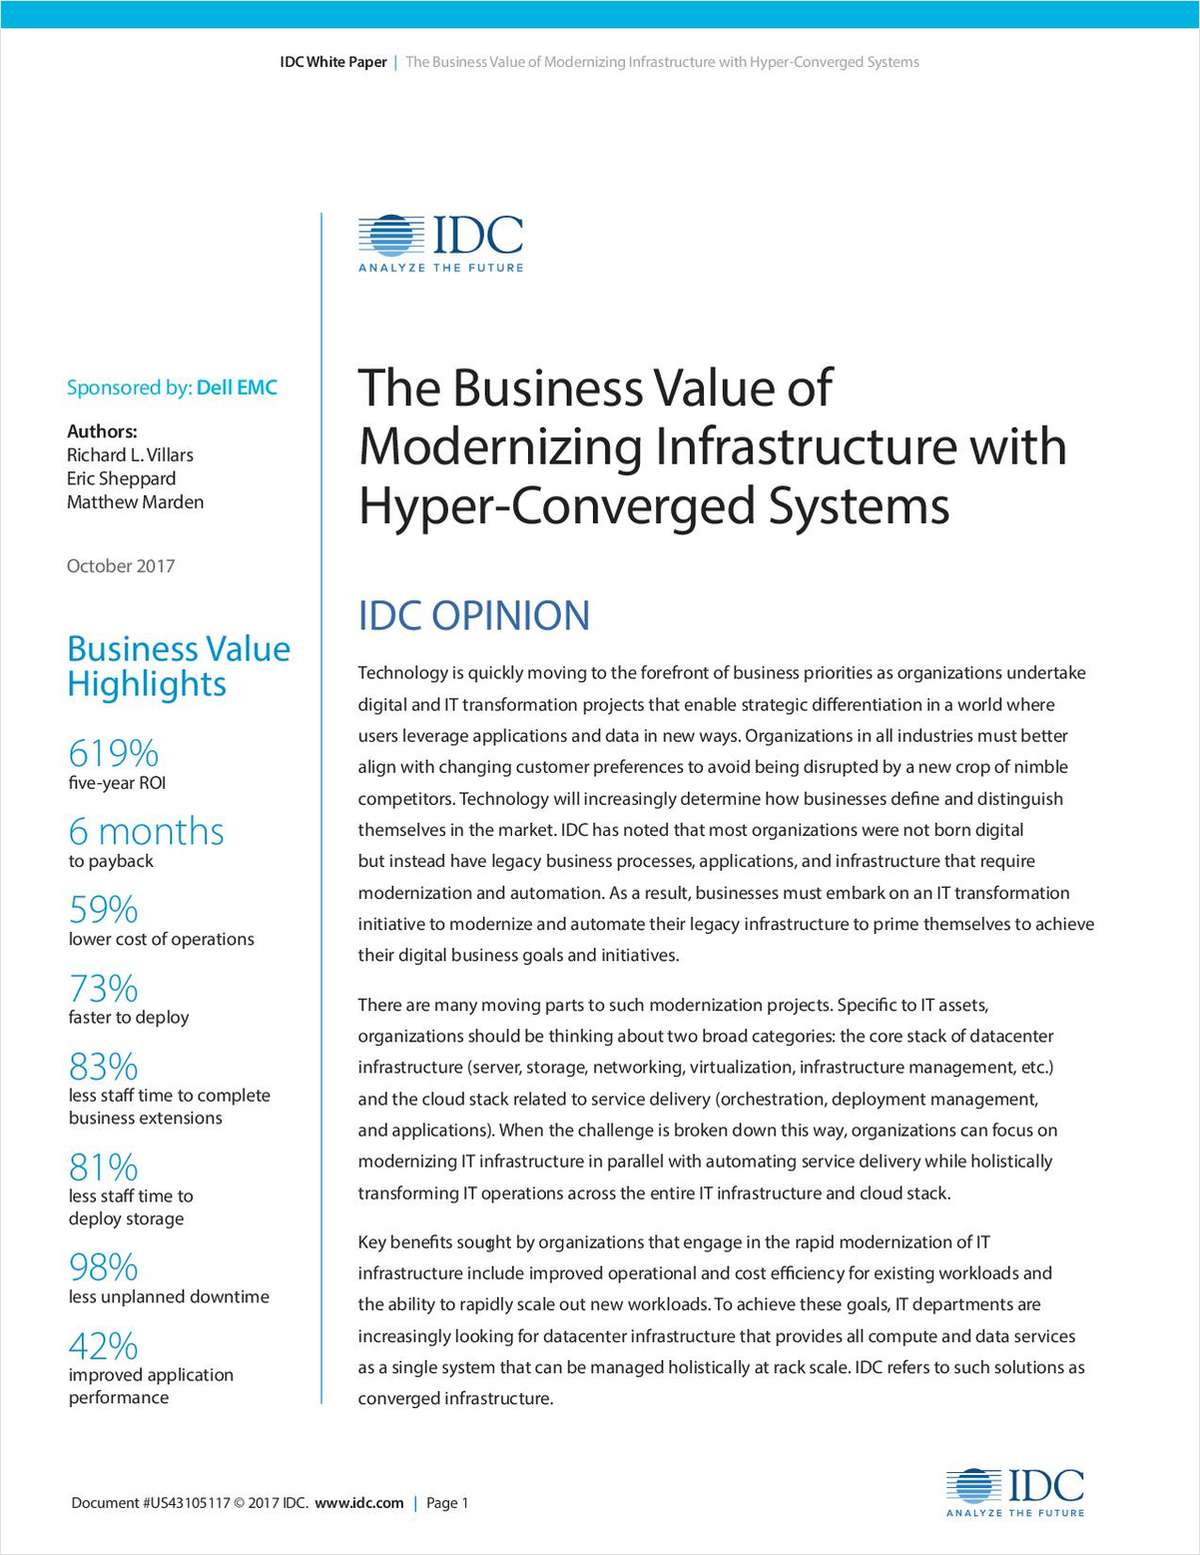 The Business Value of Modernizing Infrastructure with Hyper-Converged Systems